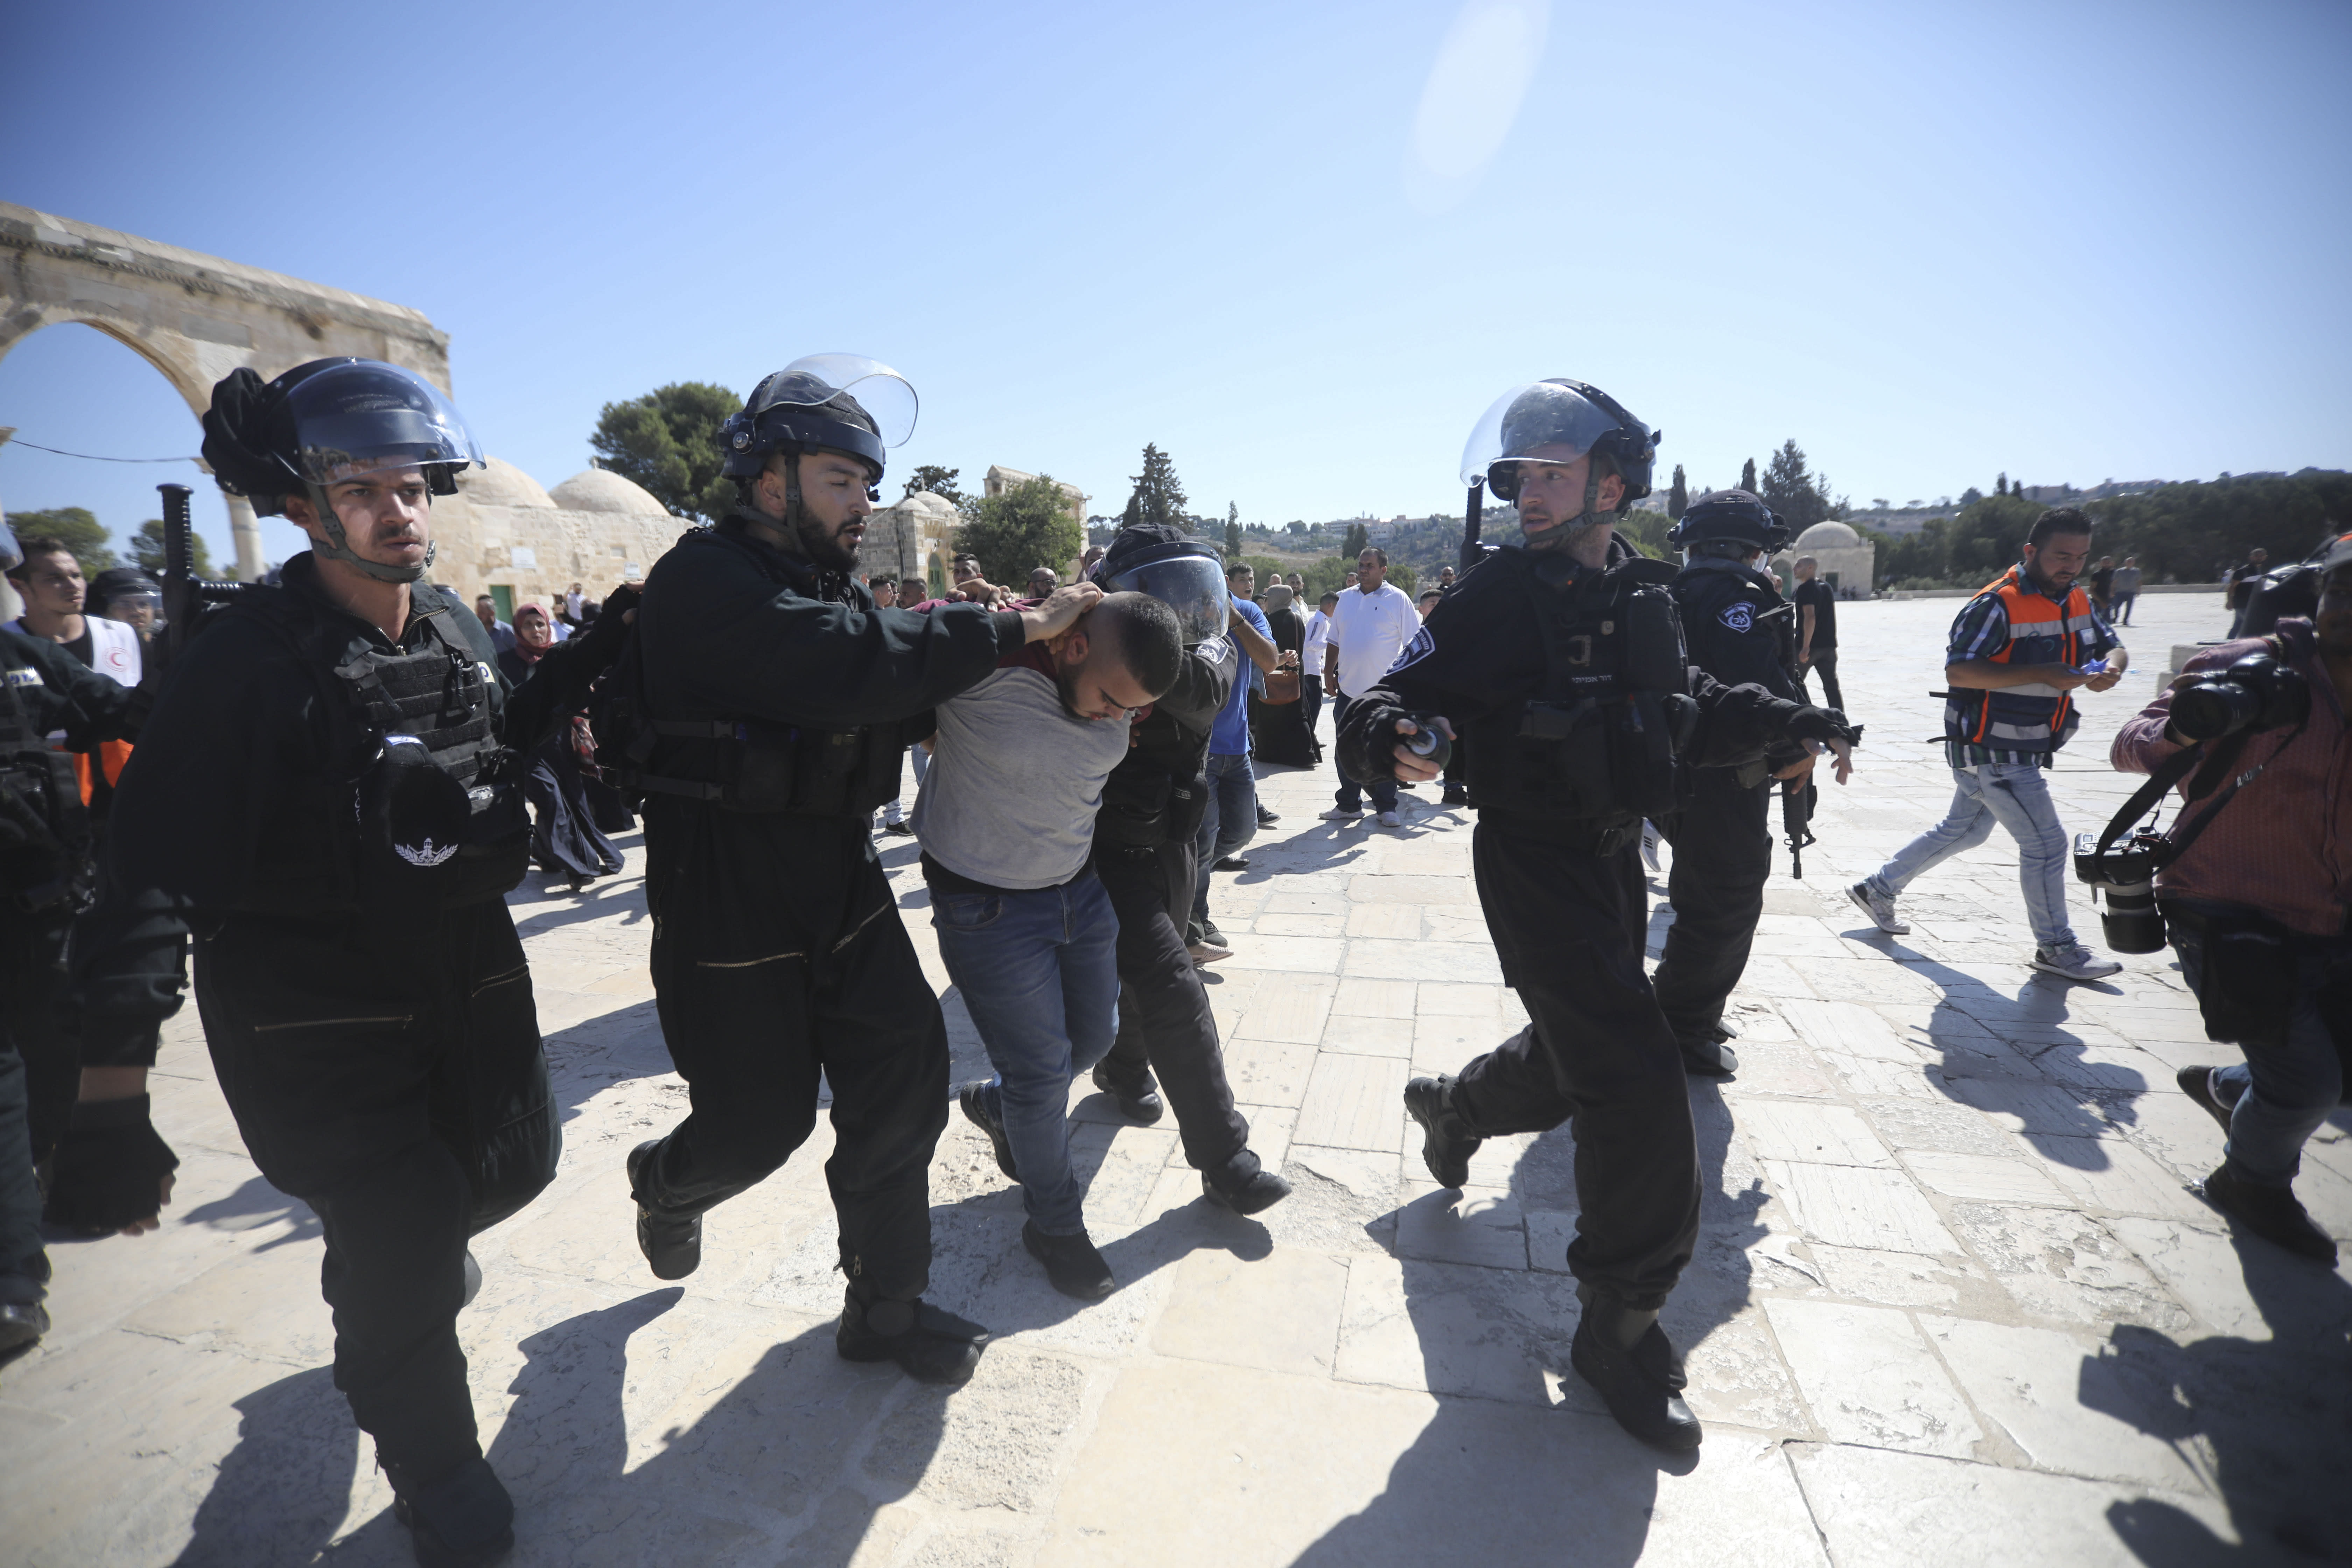 Israeli police, Palestinian worshippers clash at flashpoint holy site in East Jerusalem